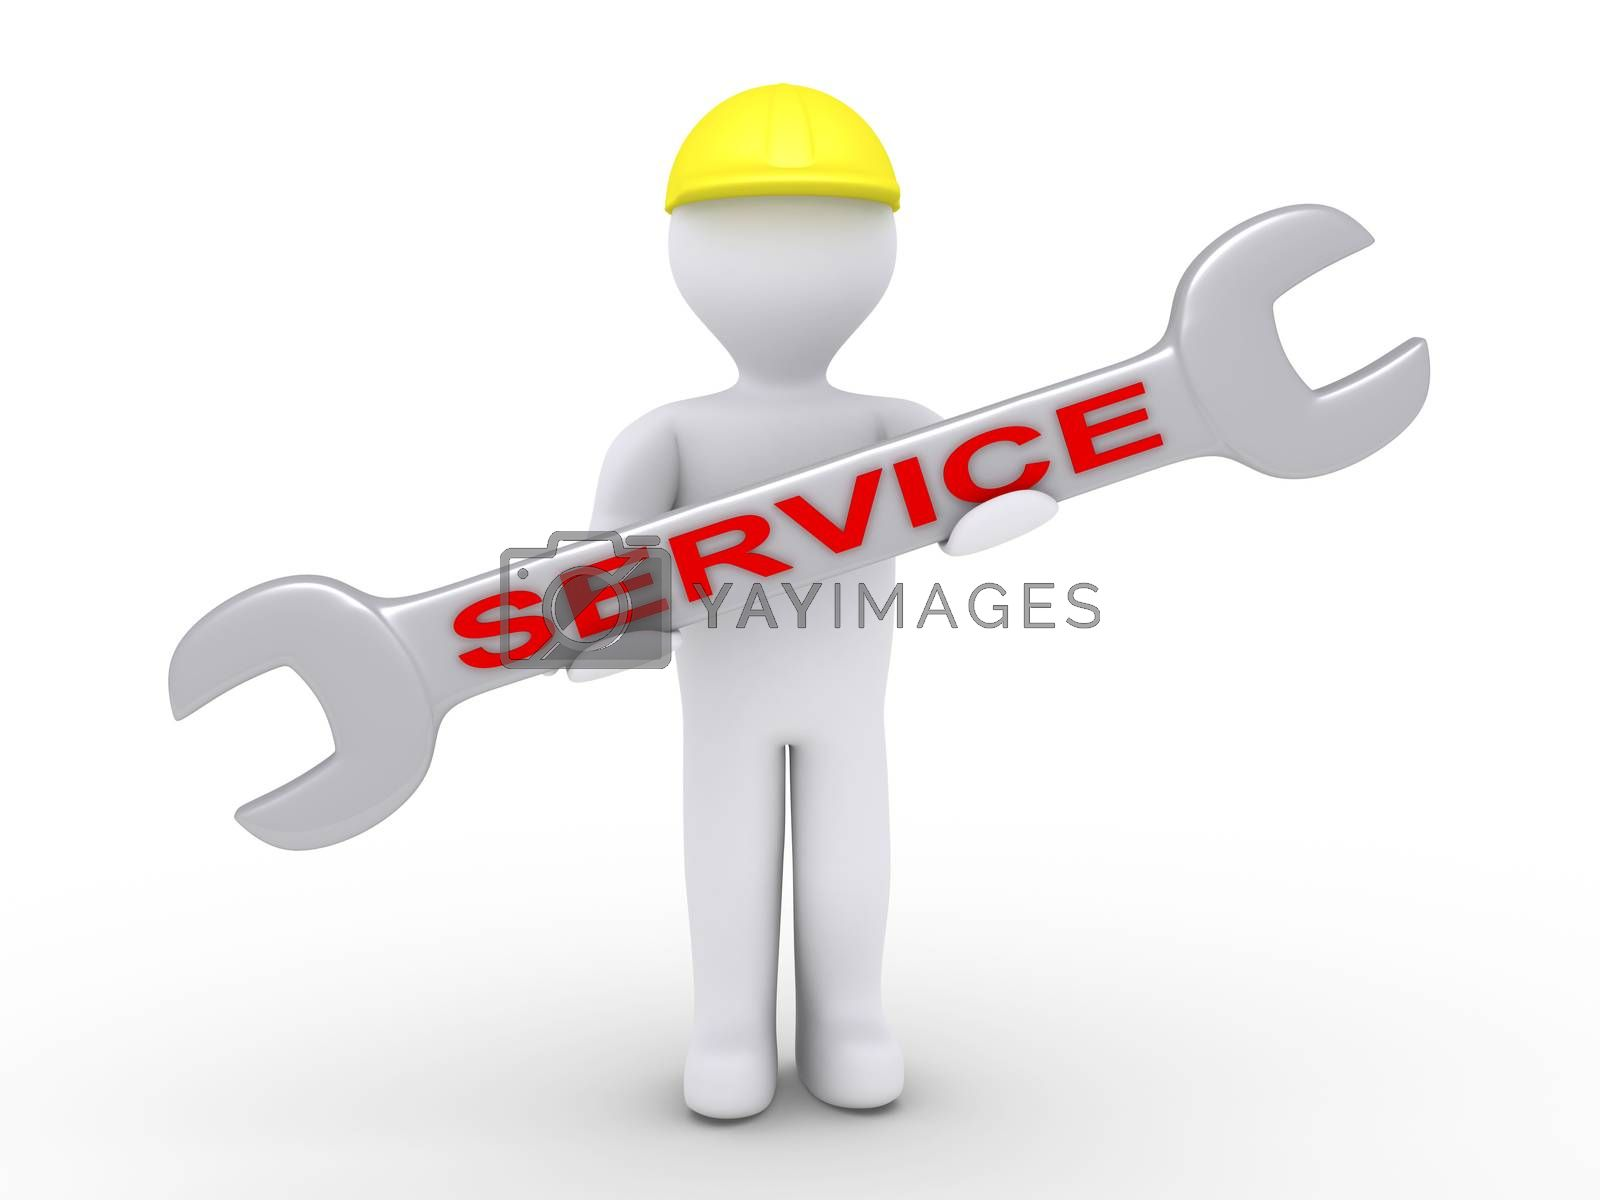 3d person with helmet is holding a wrench with a SERVICE word on it